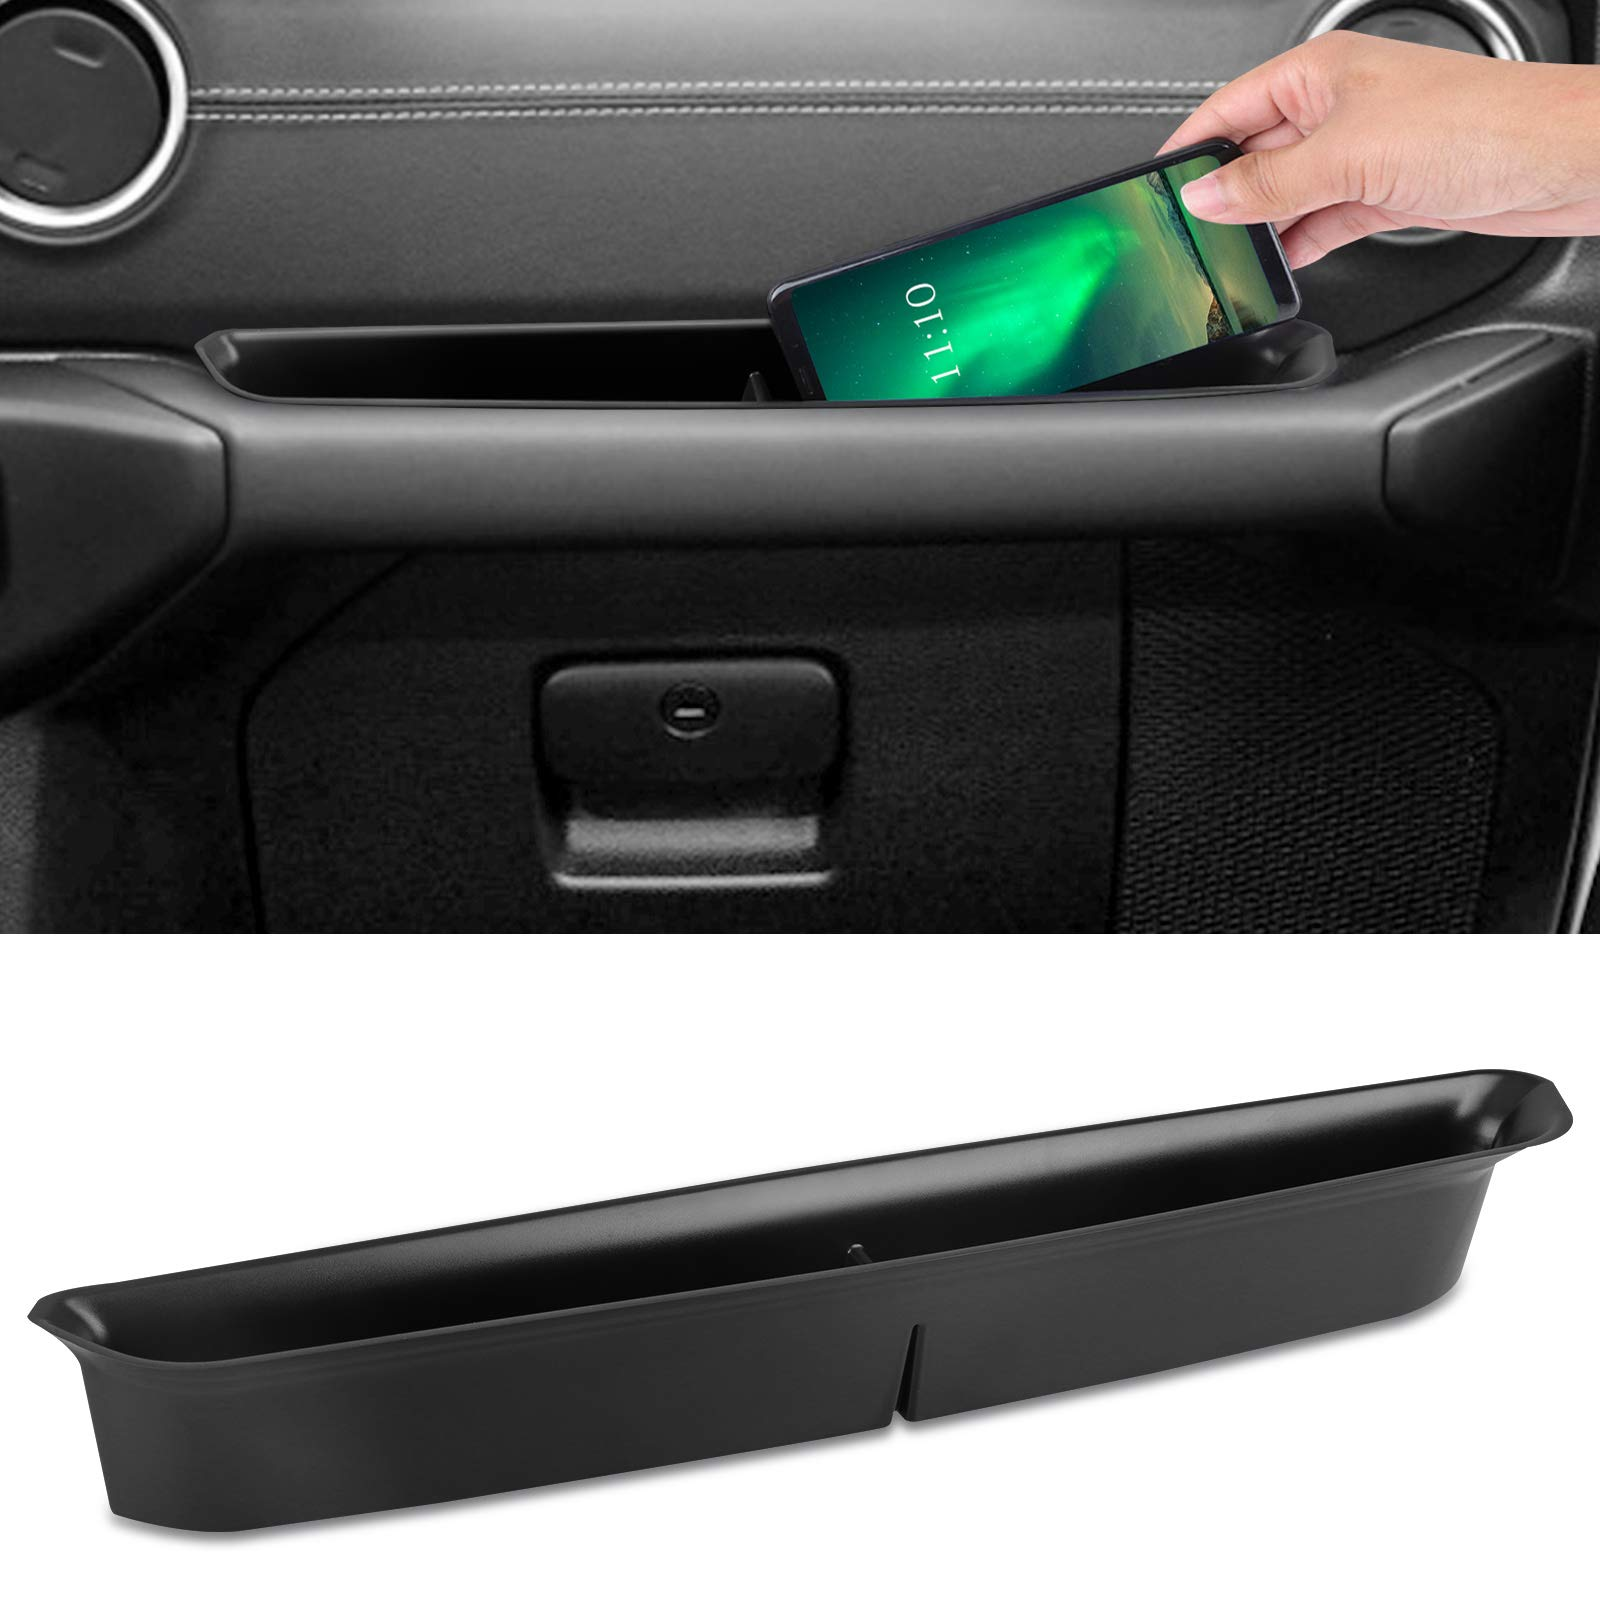 Jeep Wrangler JL GrabTray Passenger Storage Compartment Tray Organizer Grab Handle Accessory Box for 2018 2019 Jeep Wrangler JL JLU & 2020 Jeep Gladiator JT 2/4 door Car Interior Accessories, Black